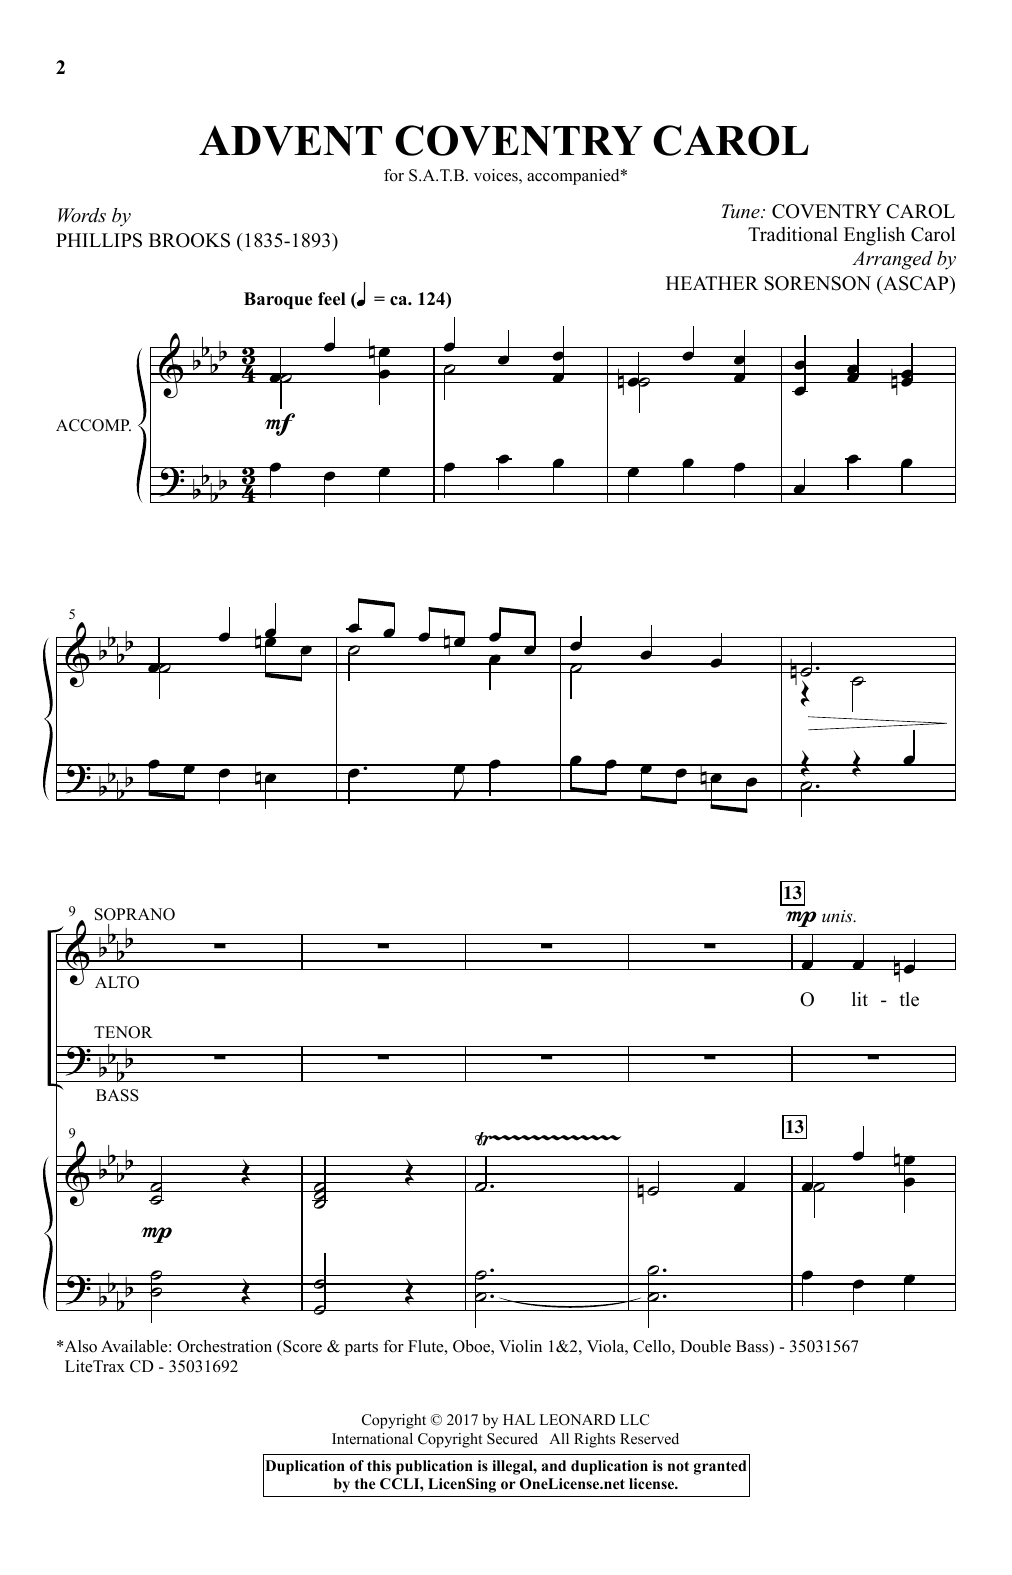 Heather Sorenson Advent Coventry Carol sheet music notes and chords. Download Printable PDF.